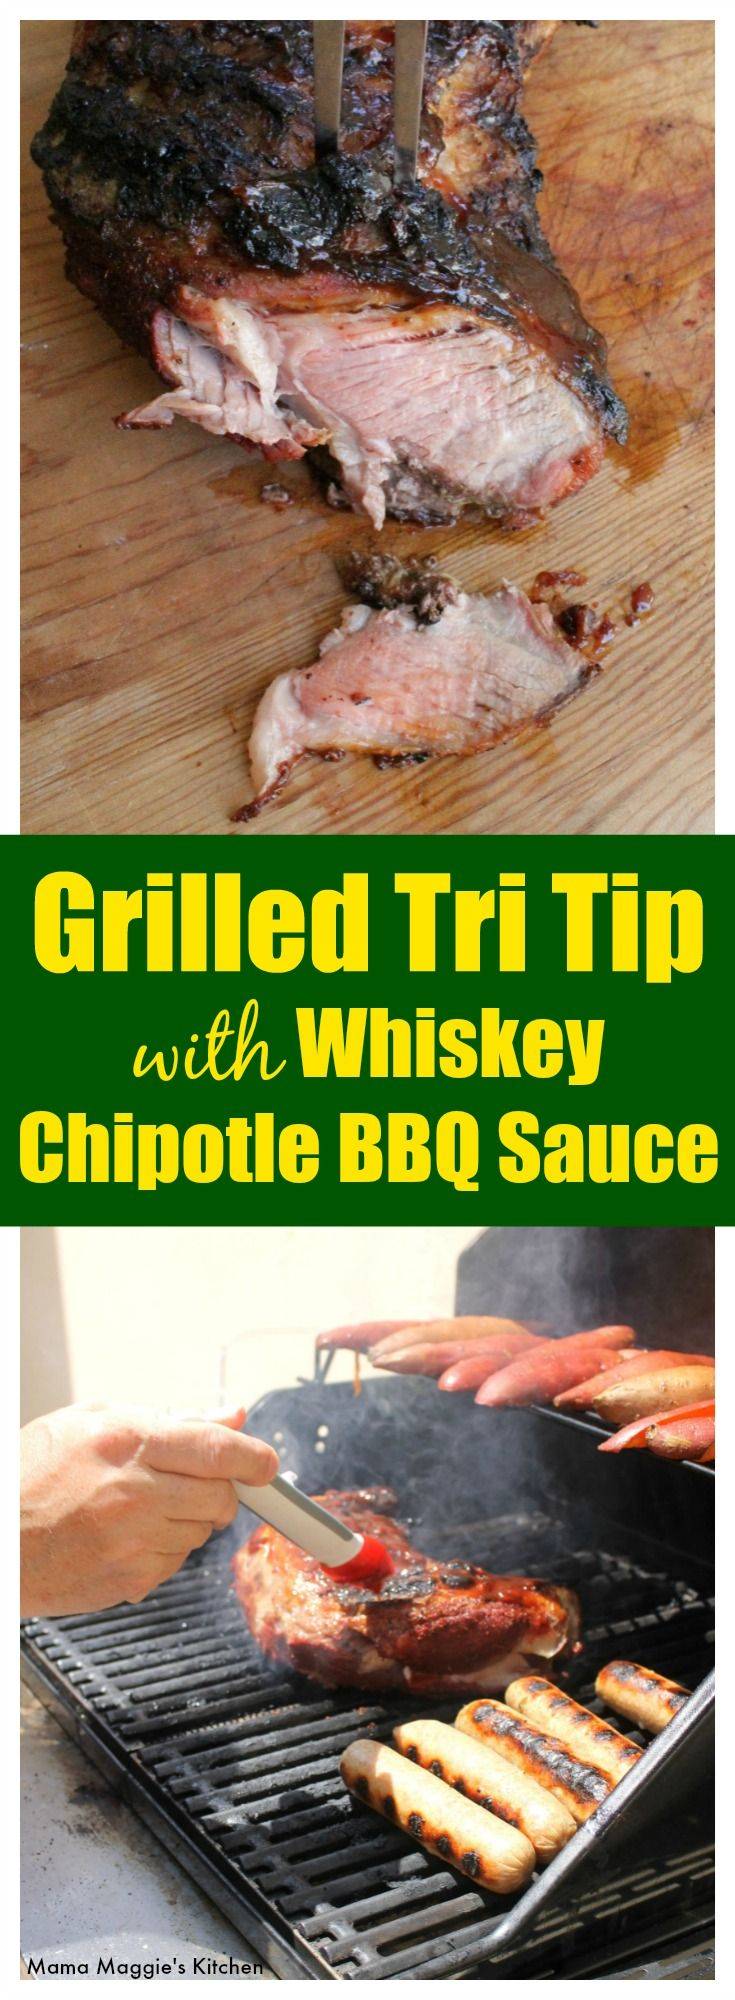 Grilled Tri Tip with Whiskey Chipotle BBQ Sauce is made for summer cookouts and hanging out with friends. This tender and soft meat is layered with a spicy, sweet sauce that you and your guests will love. By Mama Maggie's Kitchen